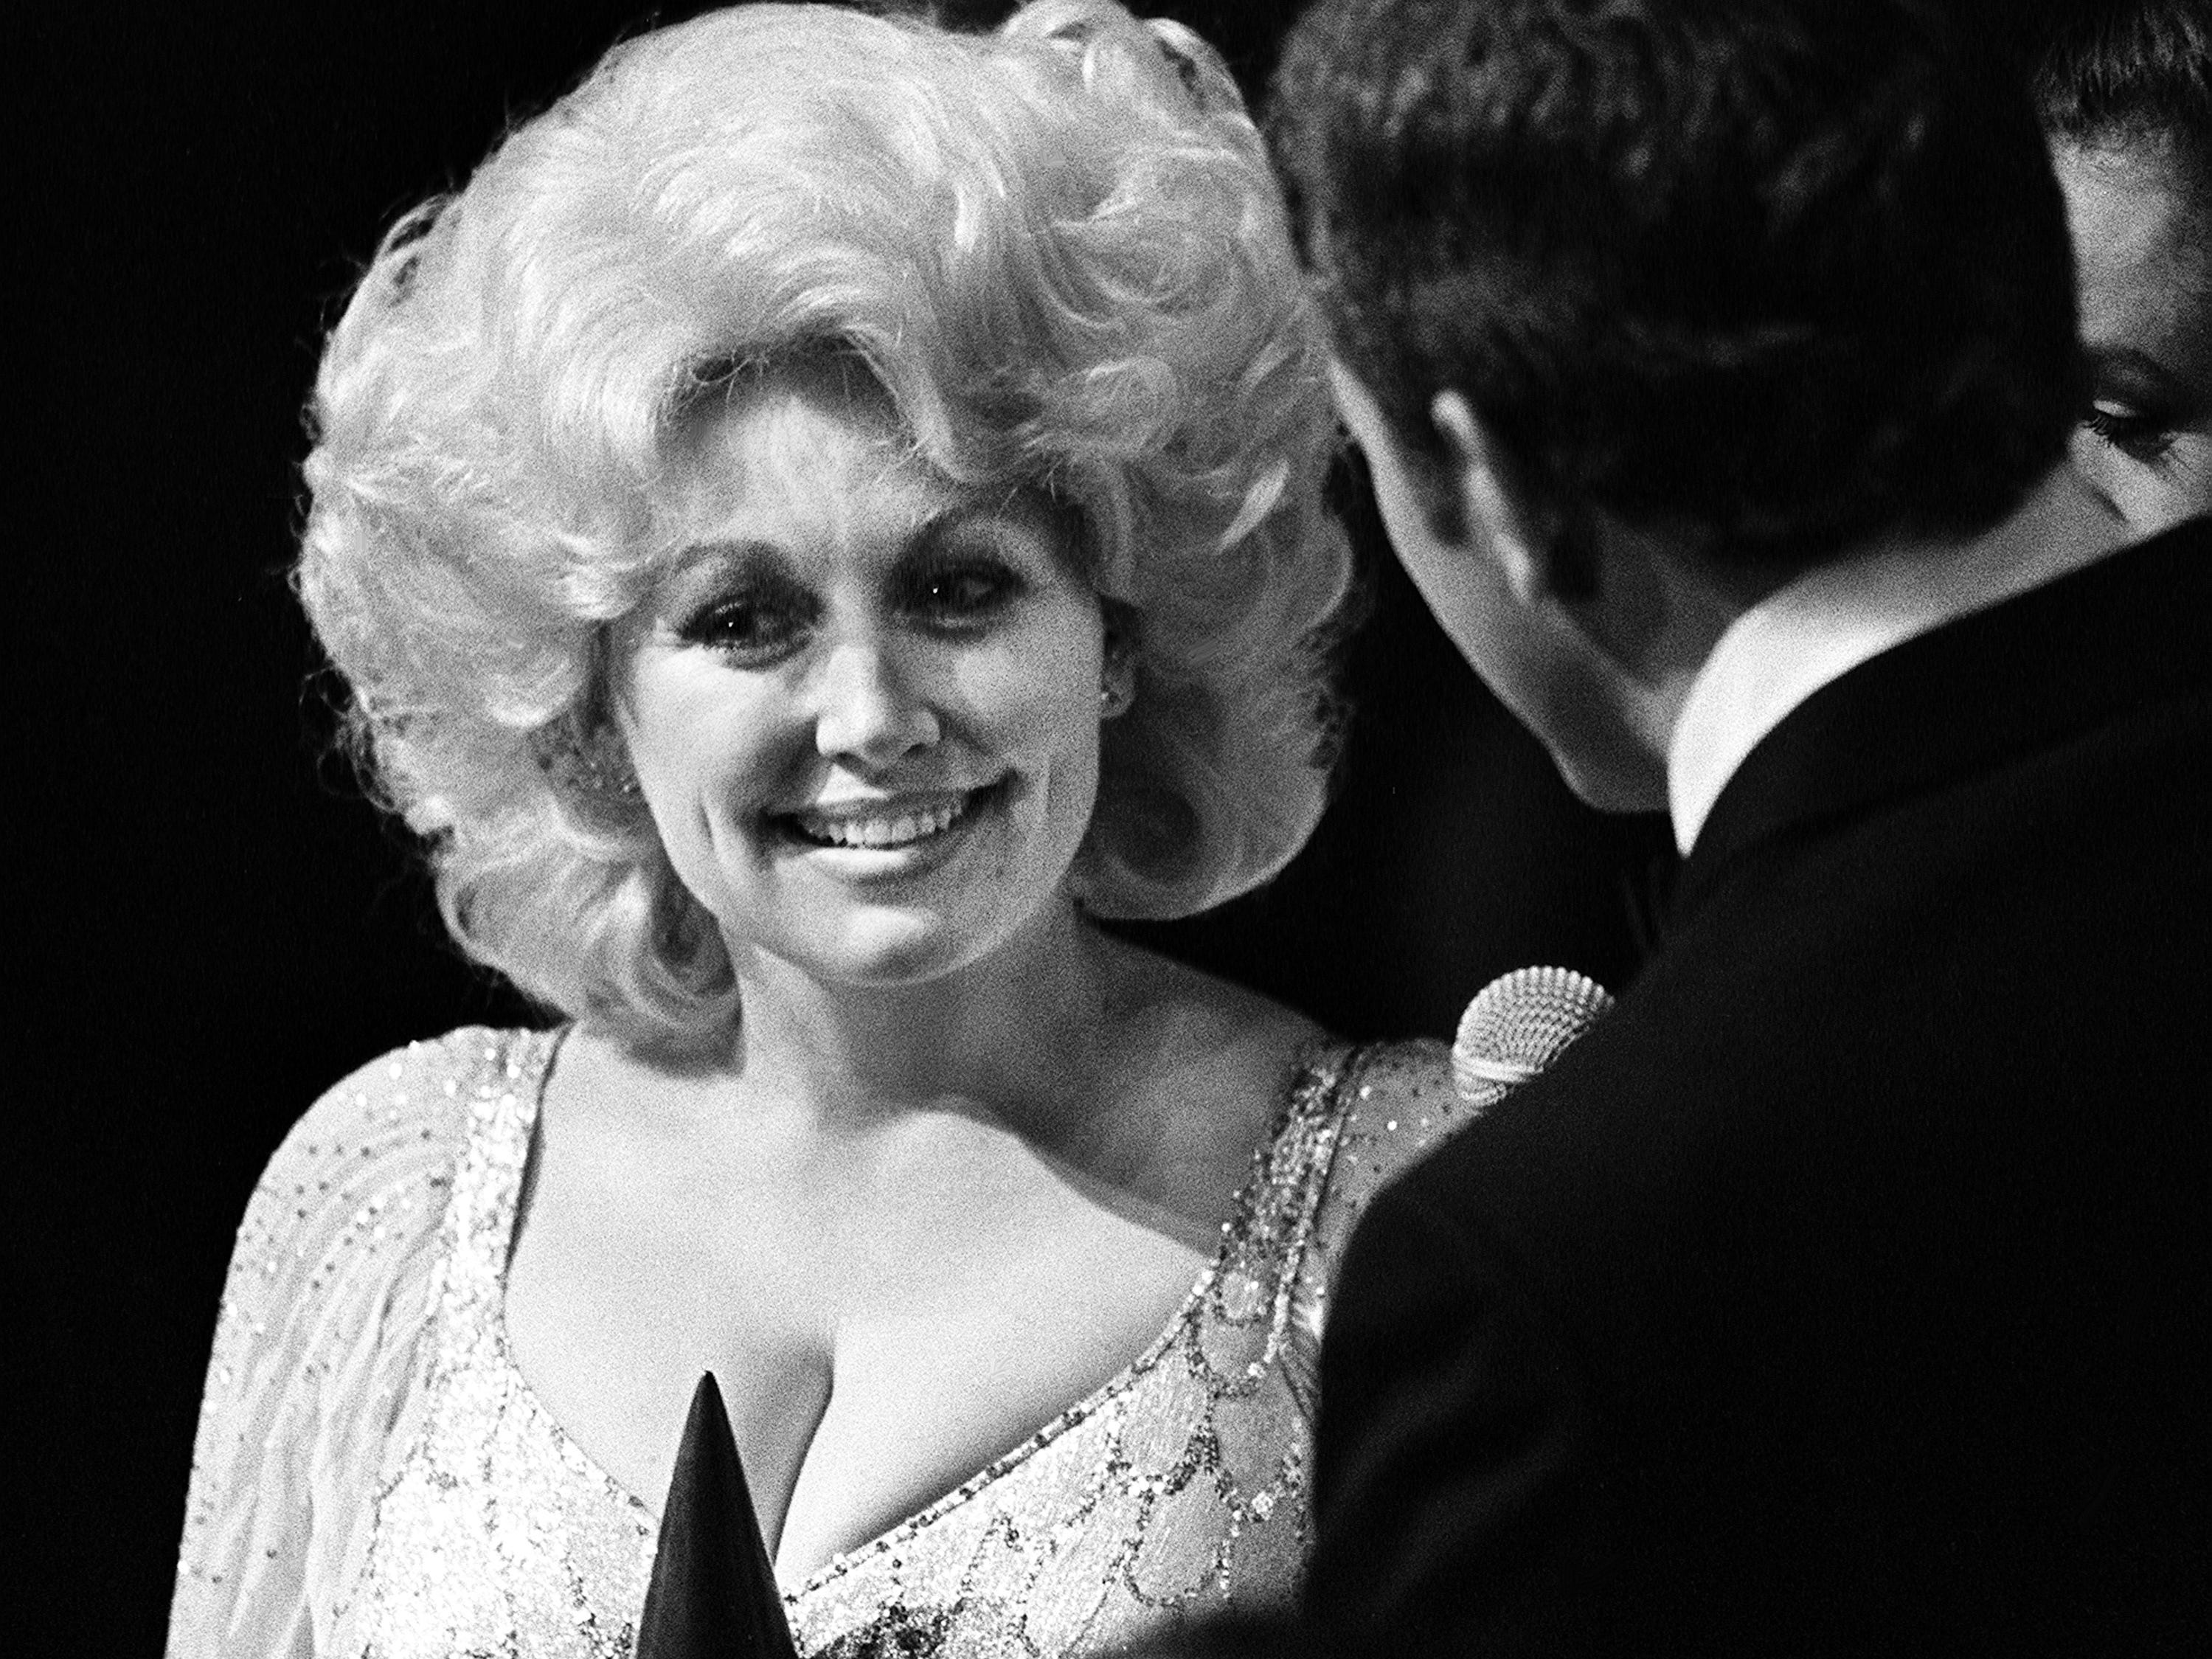 Entertainer of the Year winner Dolly Parton, left, is interviewed backstage at the 12th annual CMA Awards show at the Grand Ole Opry House on Oct. 9, 1978.